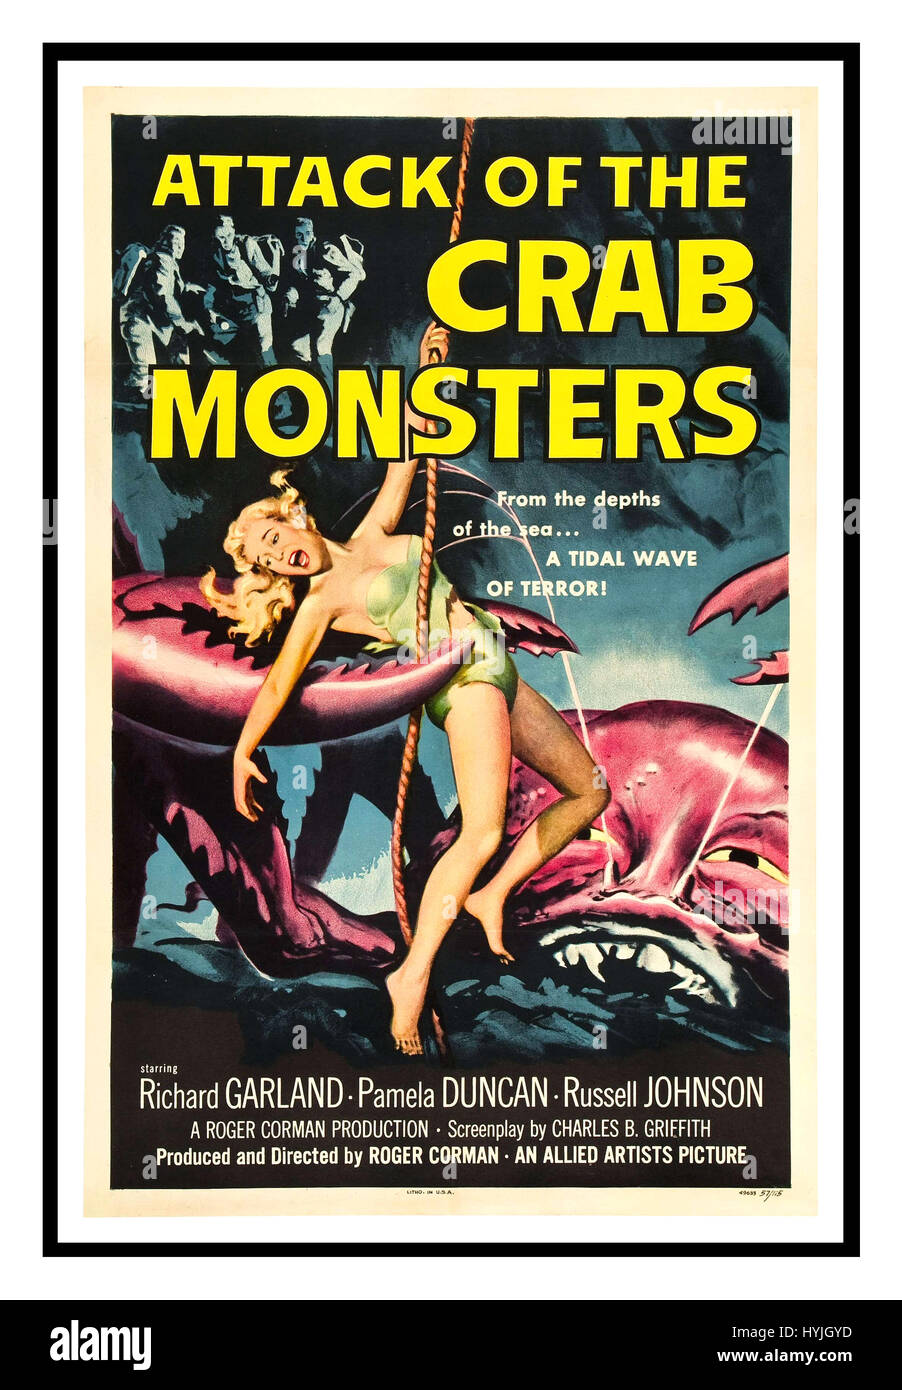 Vintage film poster advertises the horror sci-fi movie of 1957 Attack of the Crab Monsters produced and directed - Stock Image